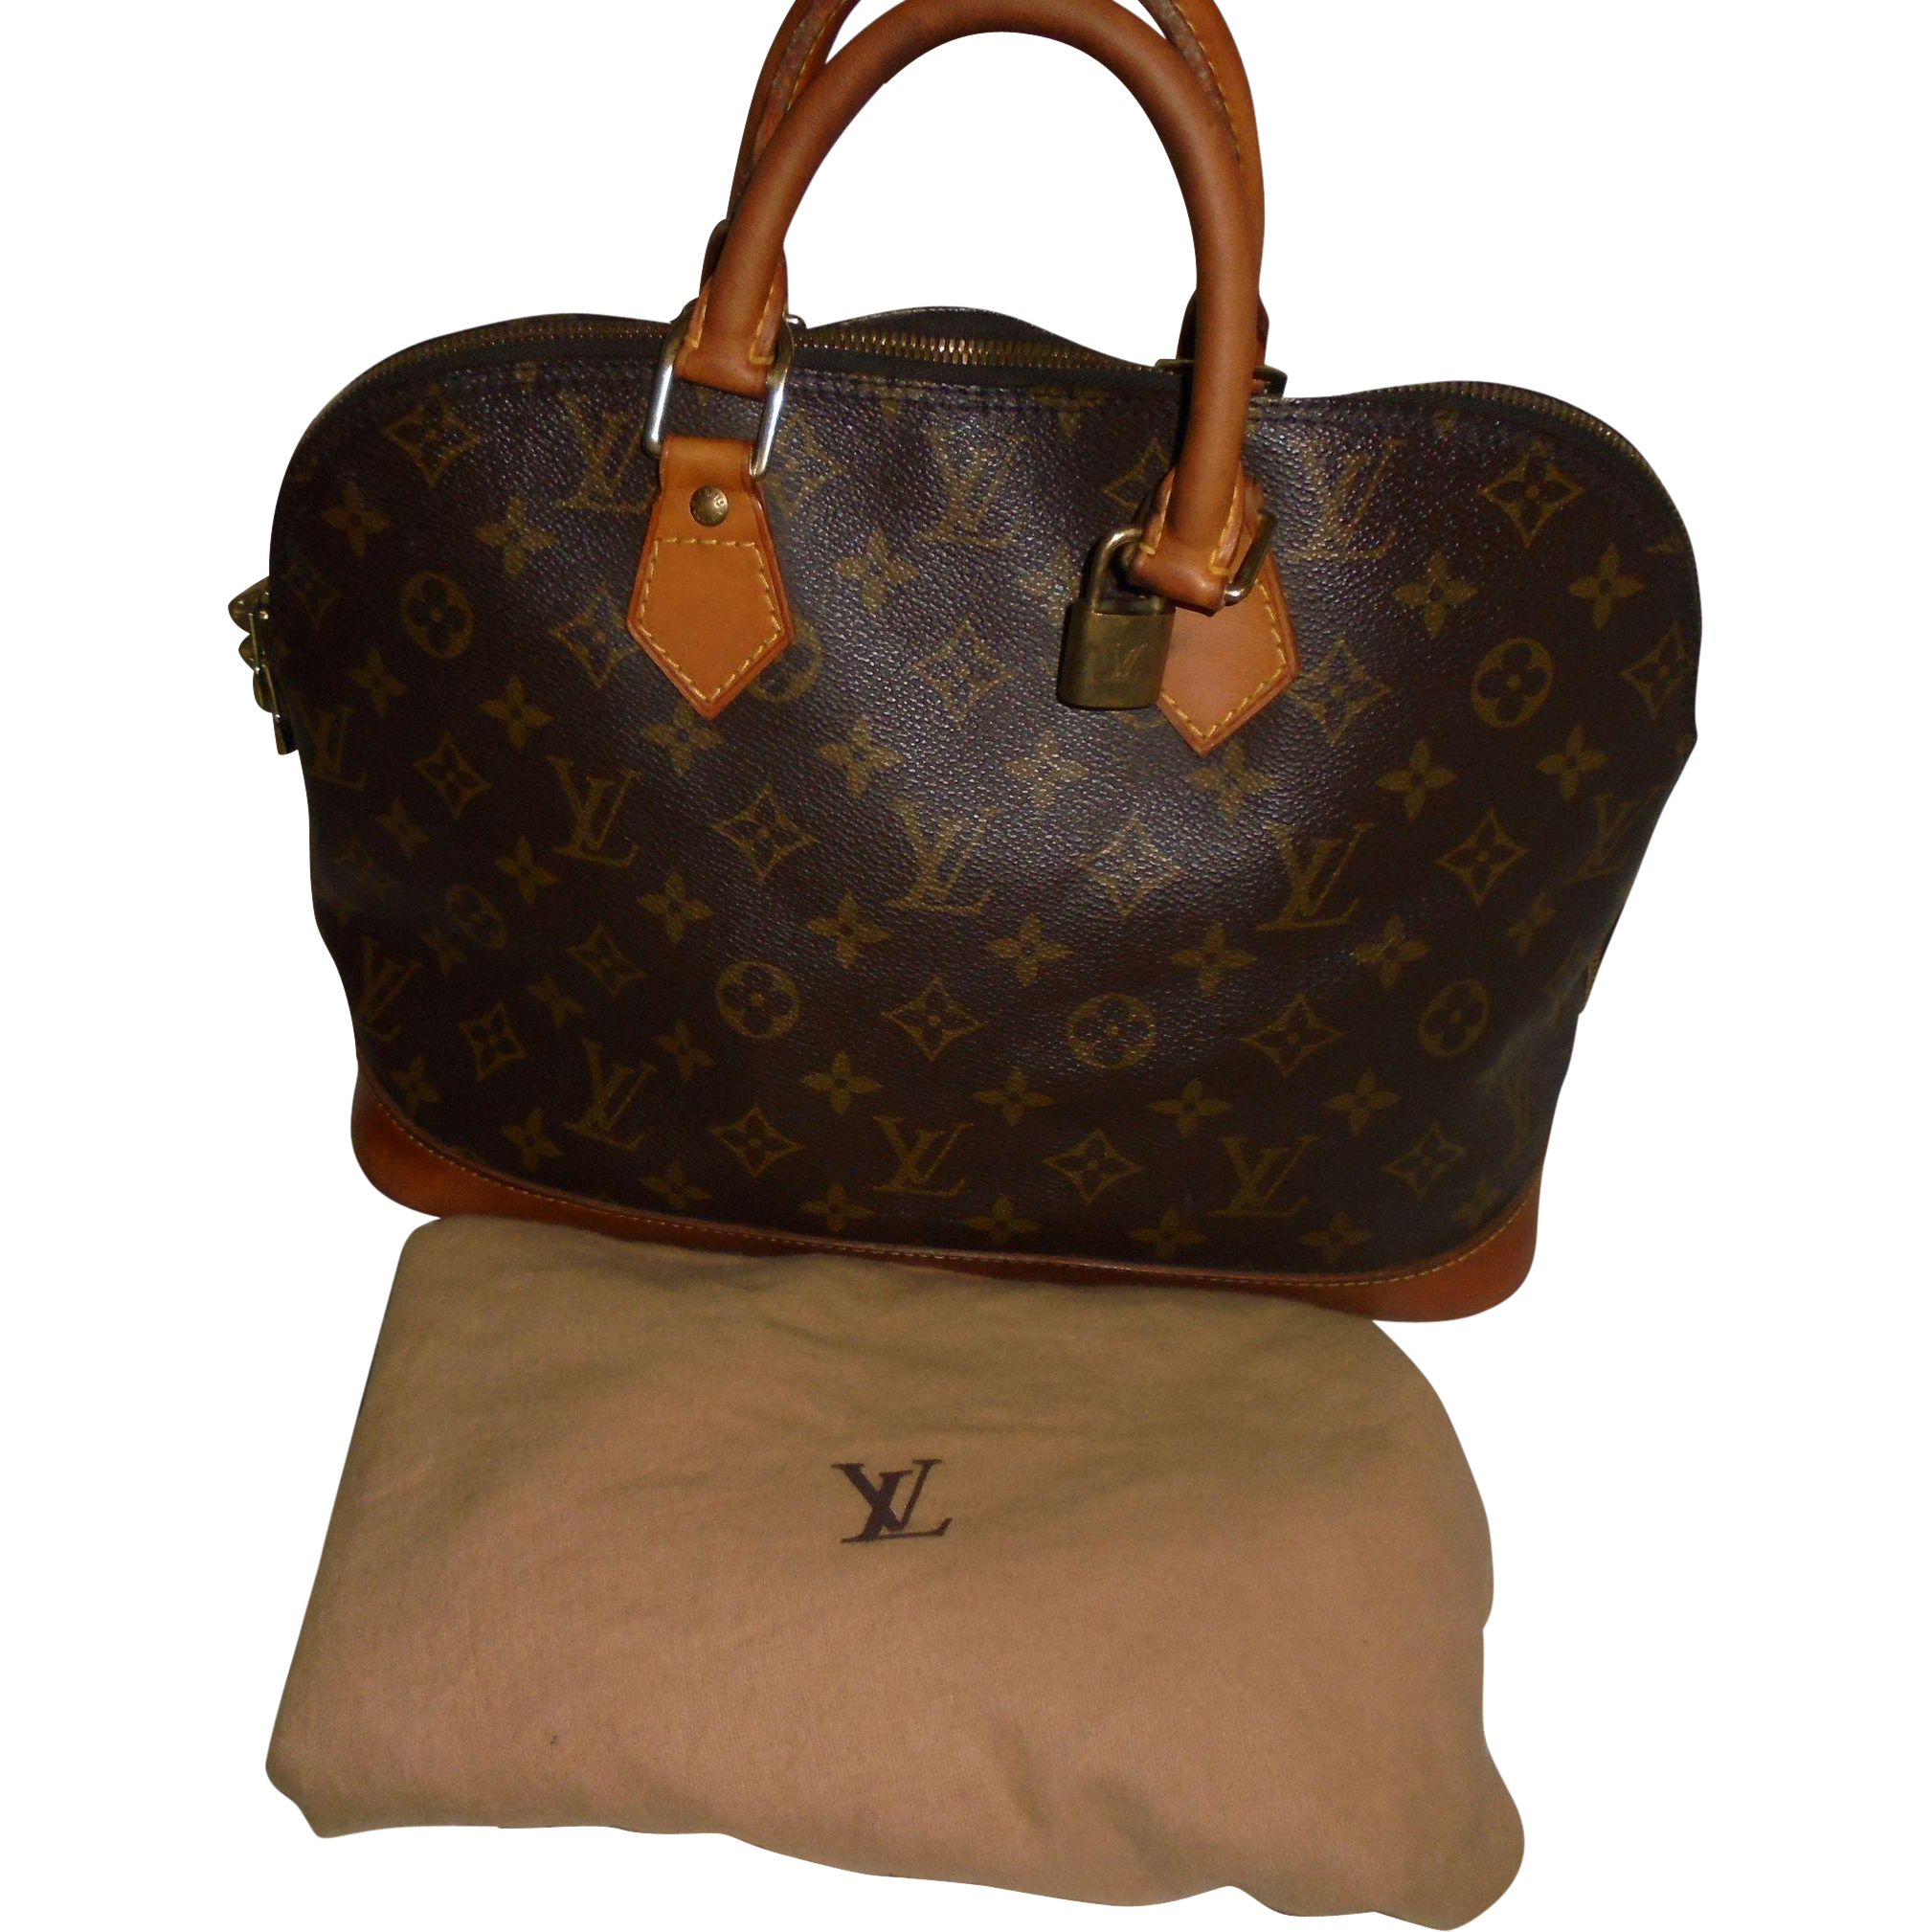 89032dae99 Vintage Louis Vuitton Satchel Bag | Stanford Center for Opportunity ...